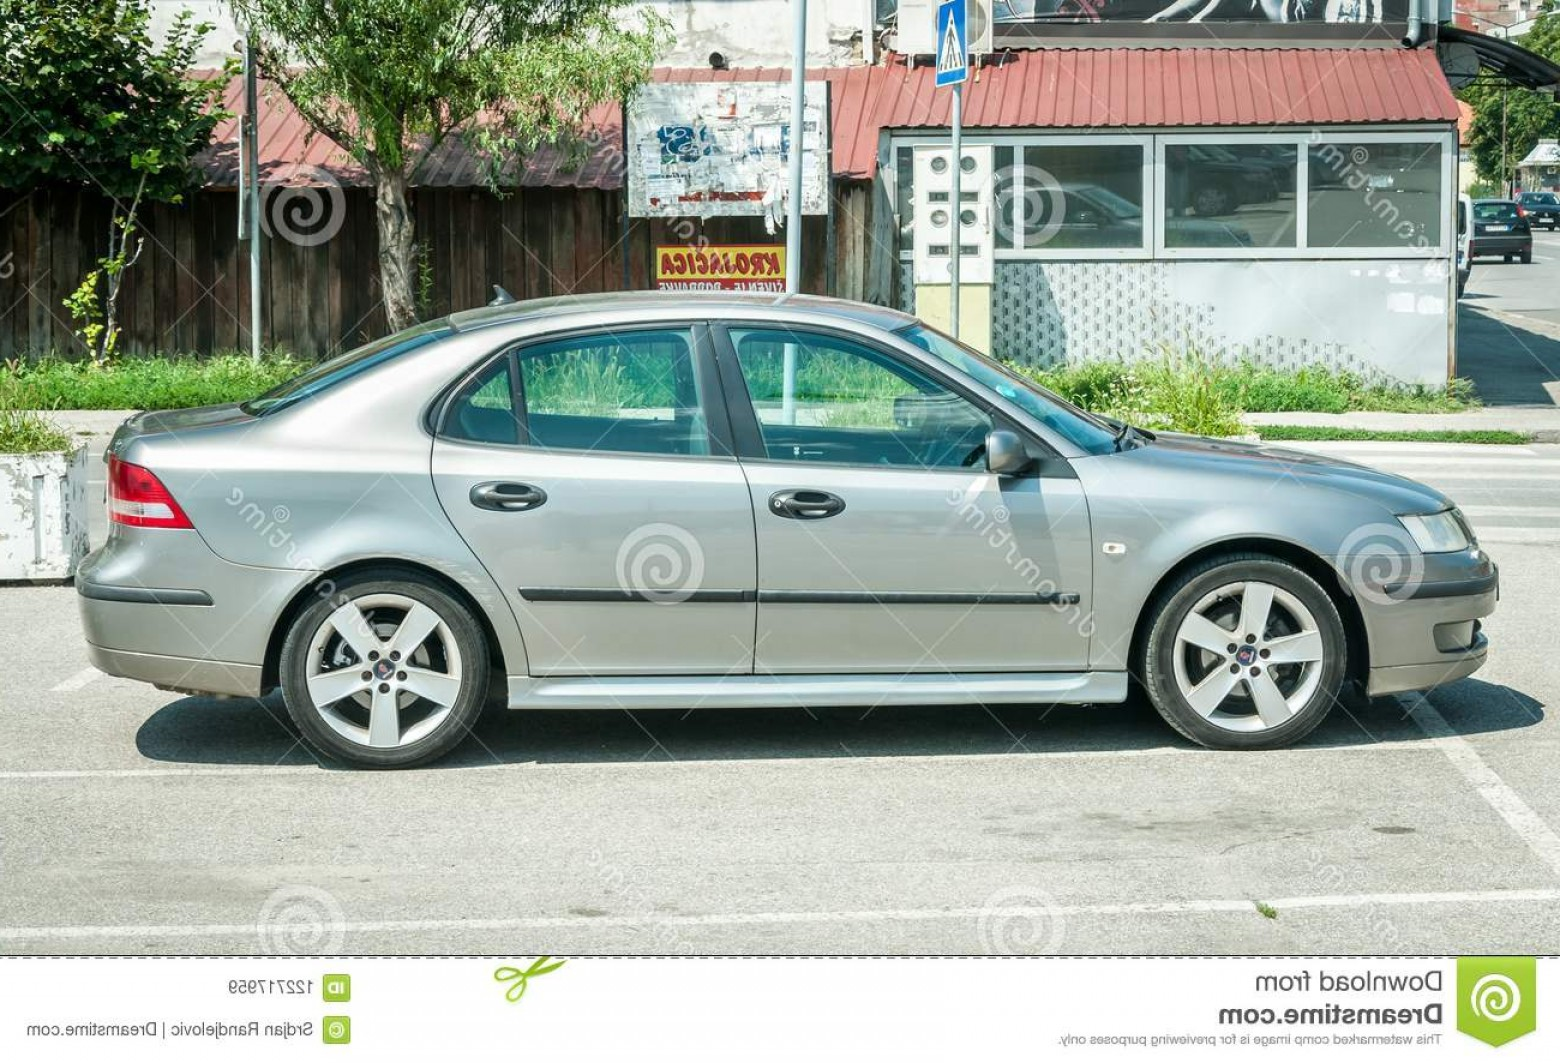 Saab 9 3 Vector Clip Art: Novi Sad Serbia July New Silver Saab Car Parked Street City Editorial Image Image